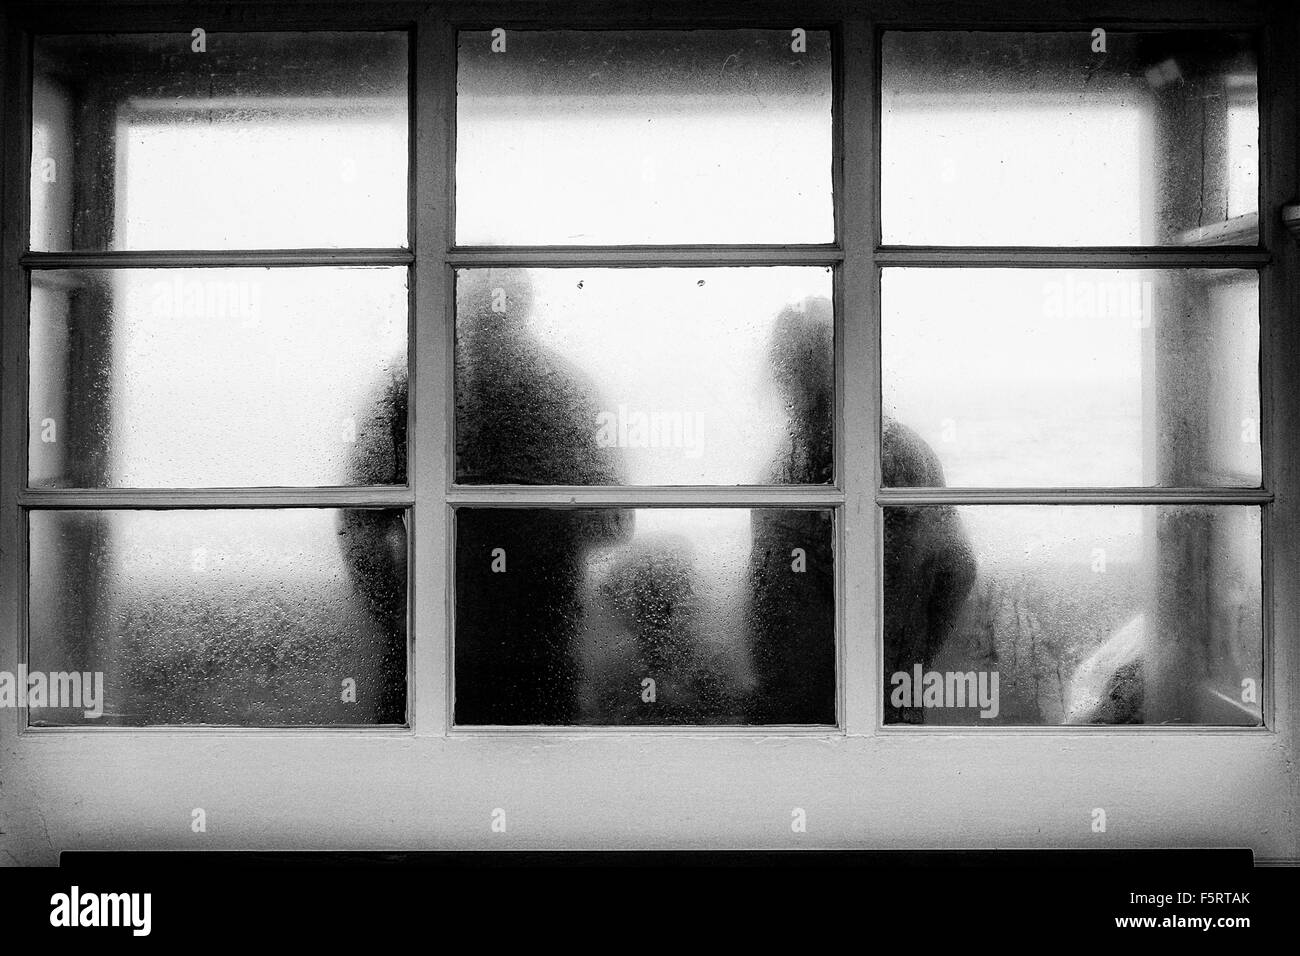 A family shelter from the rain in a seafront shelter, photographed through the wet frosted glass. Stock Photo